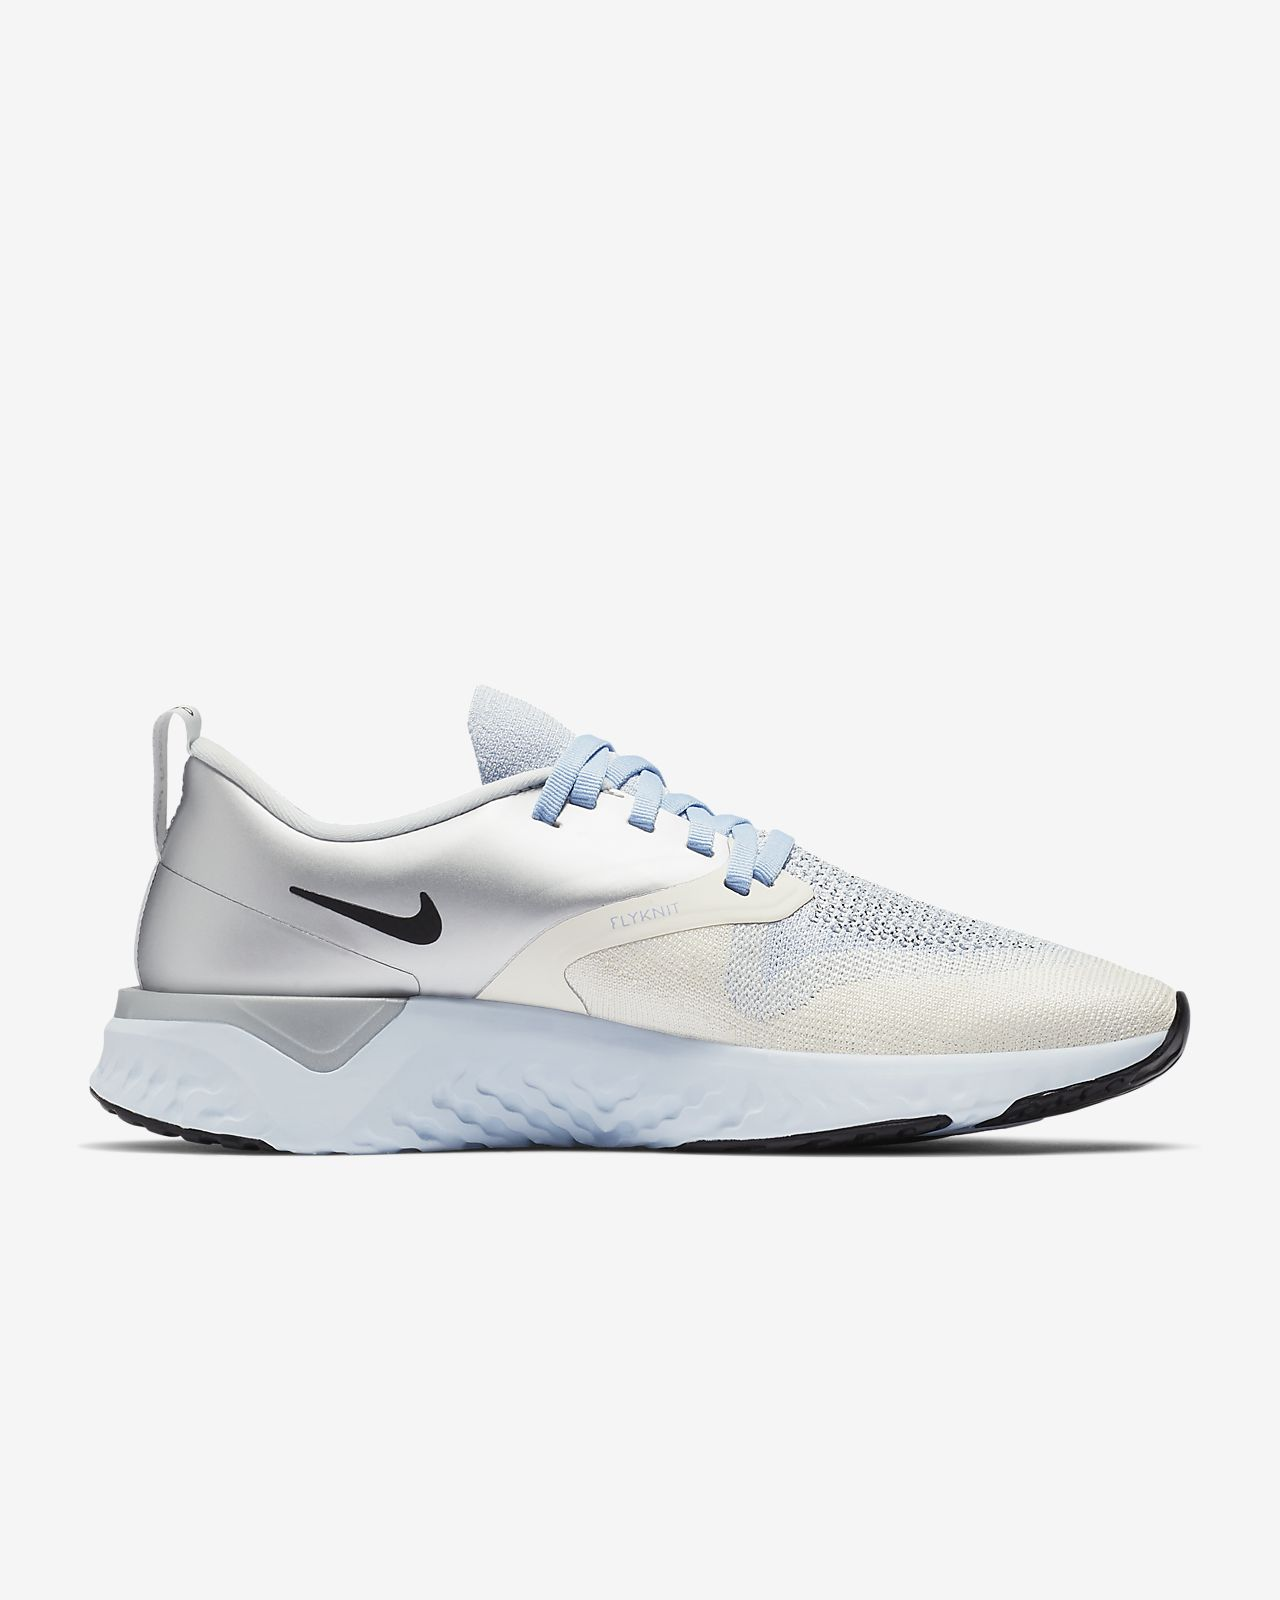 nike react odissey donna